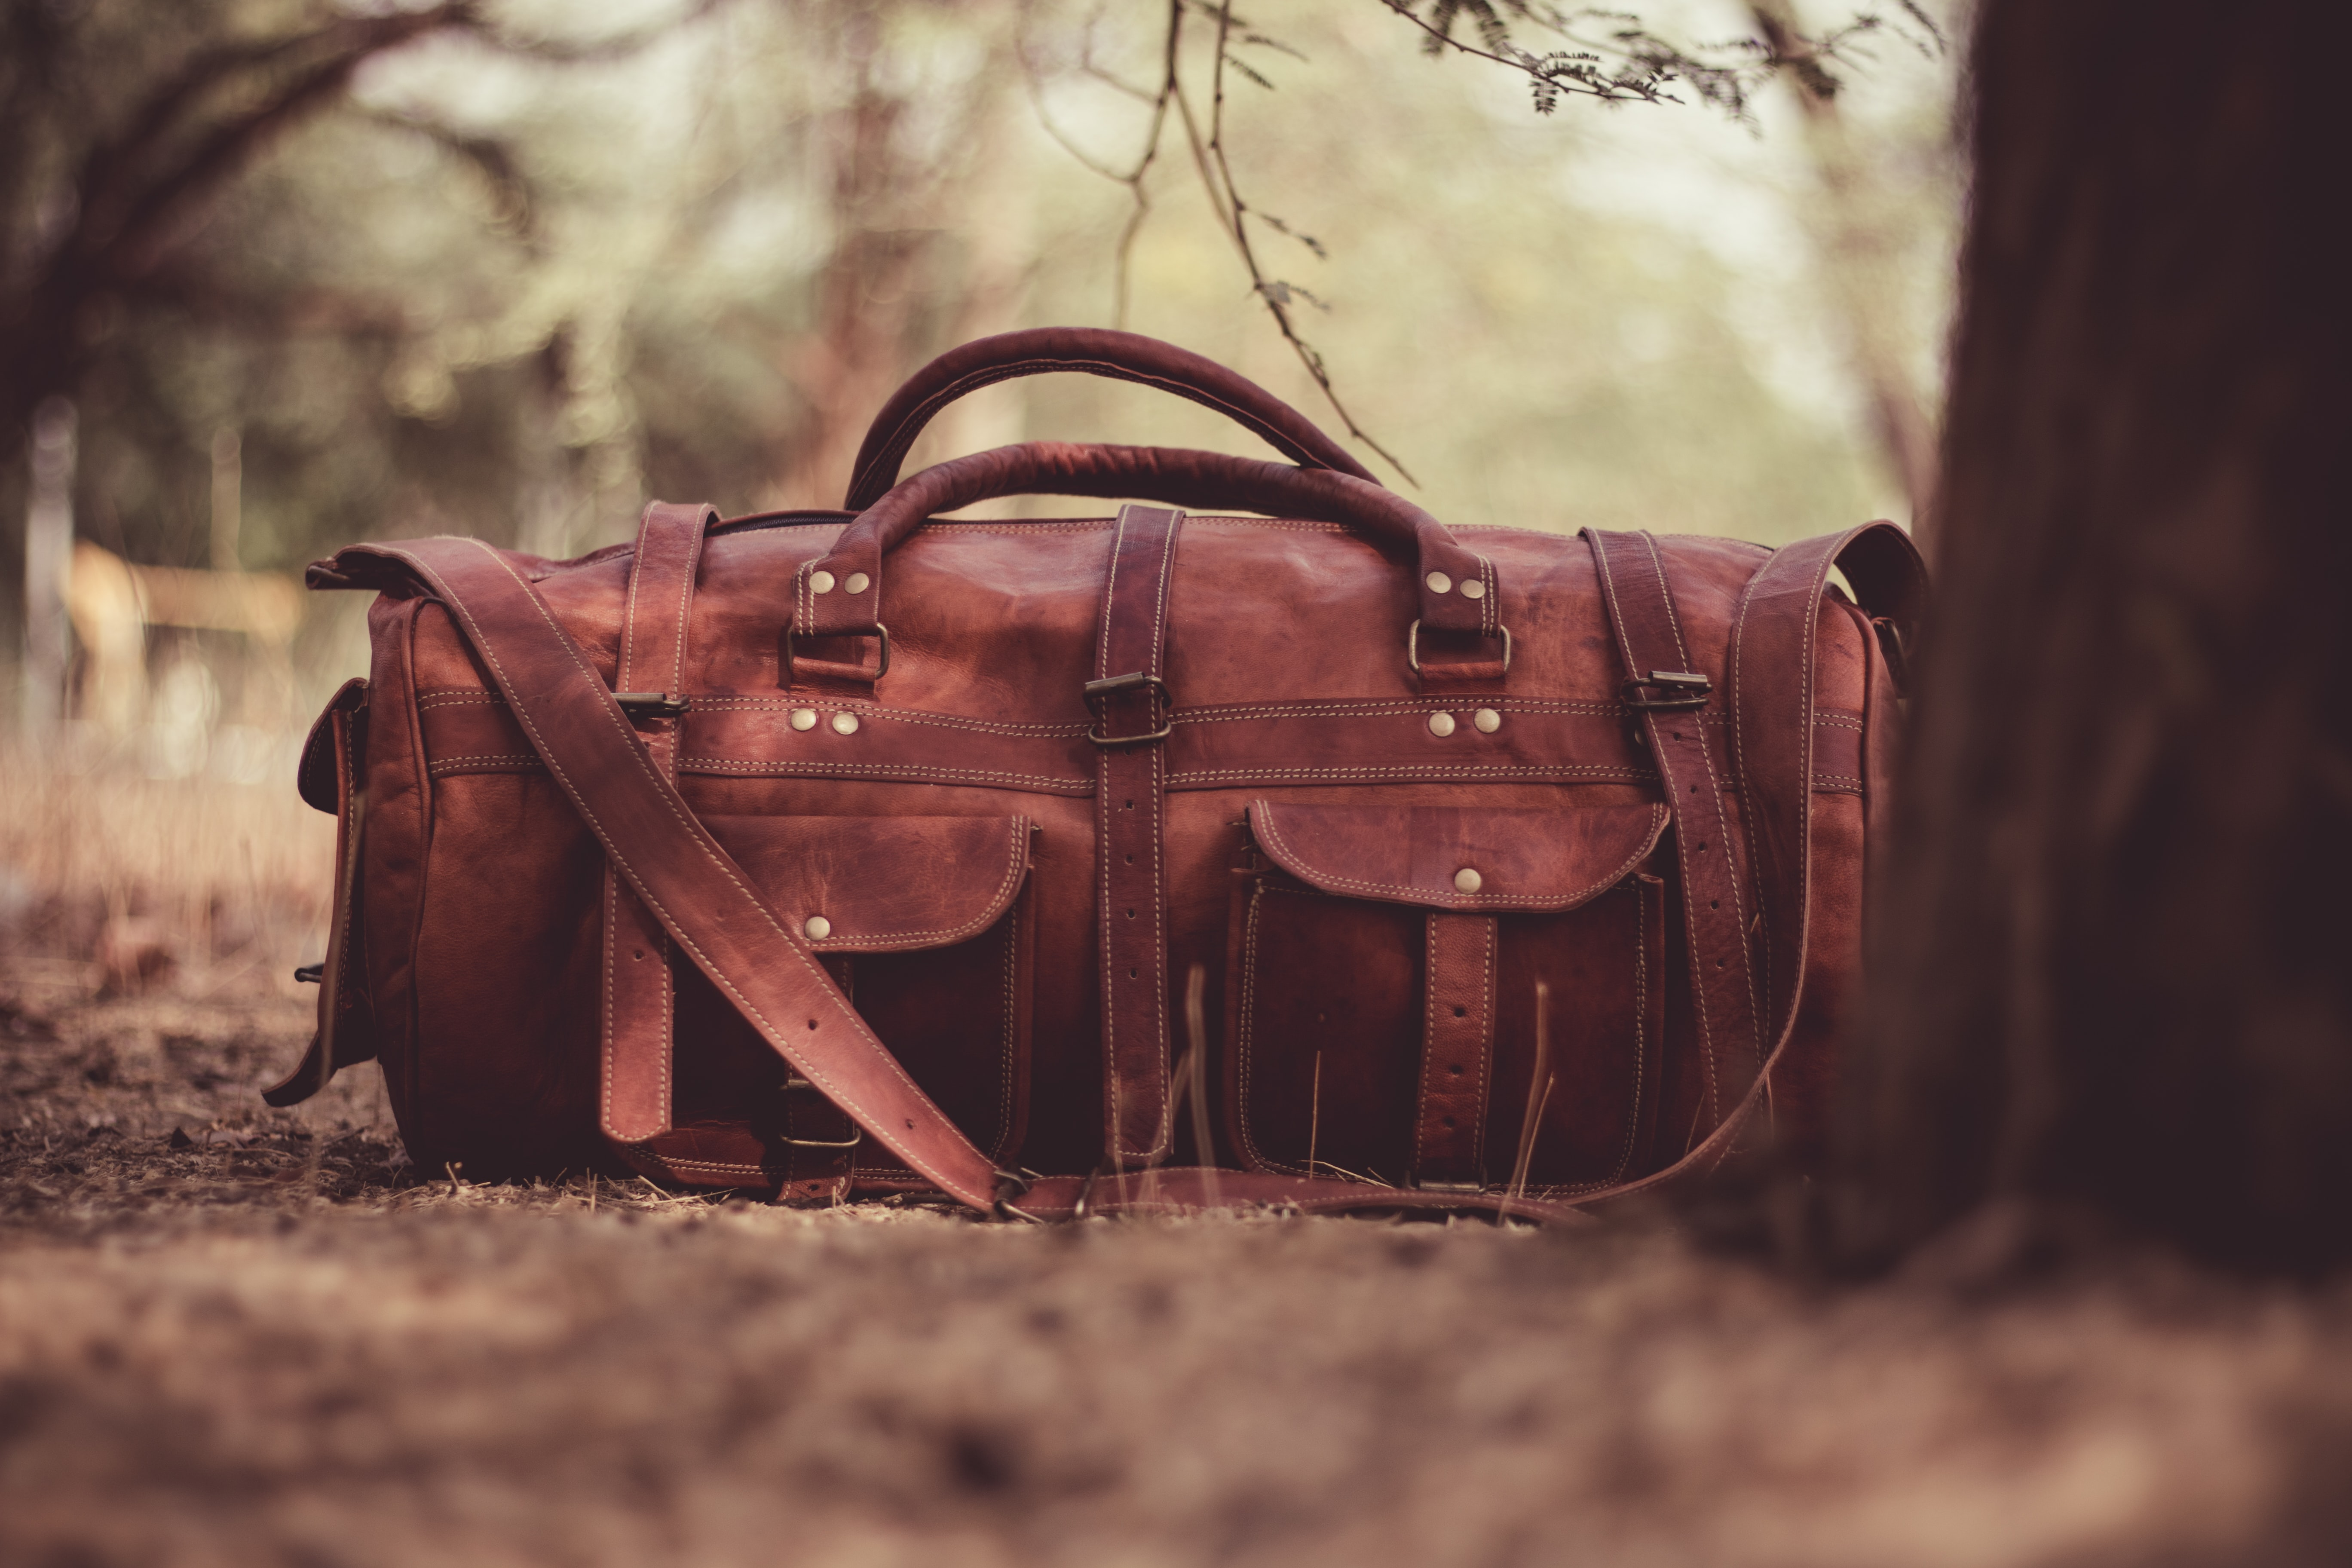 A leather duffel bag on the forest floor under a tree